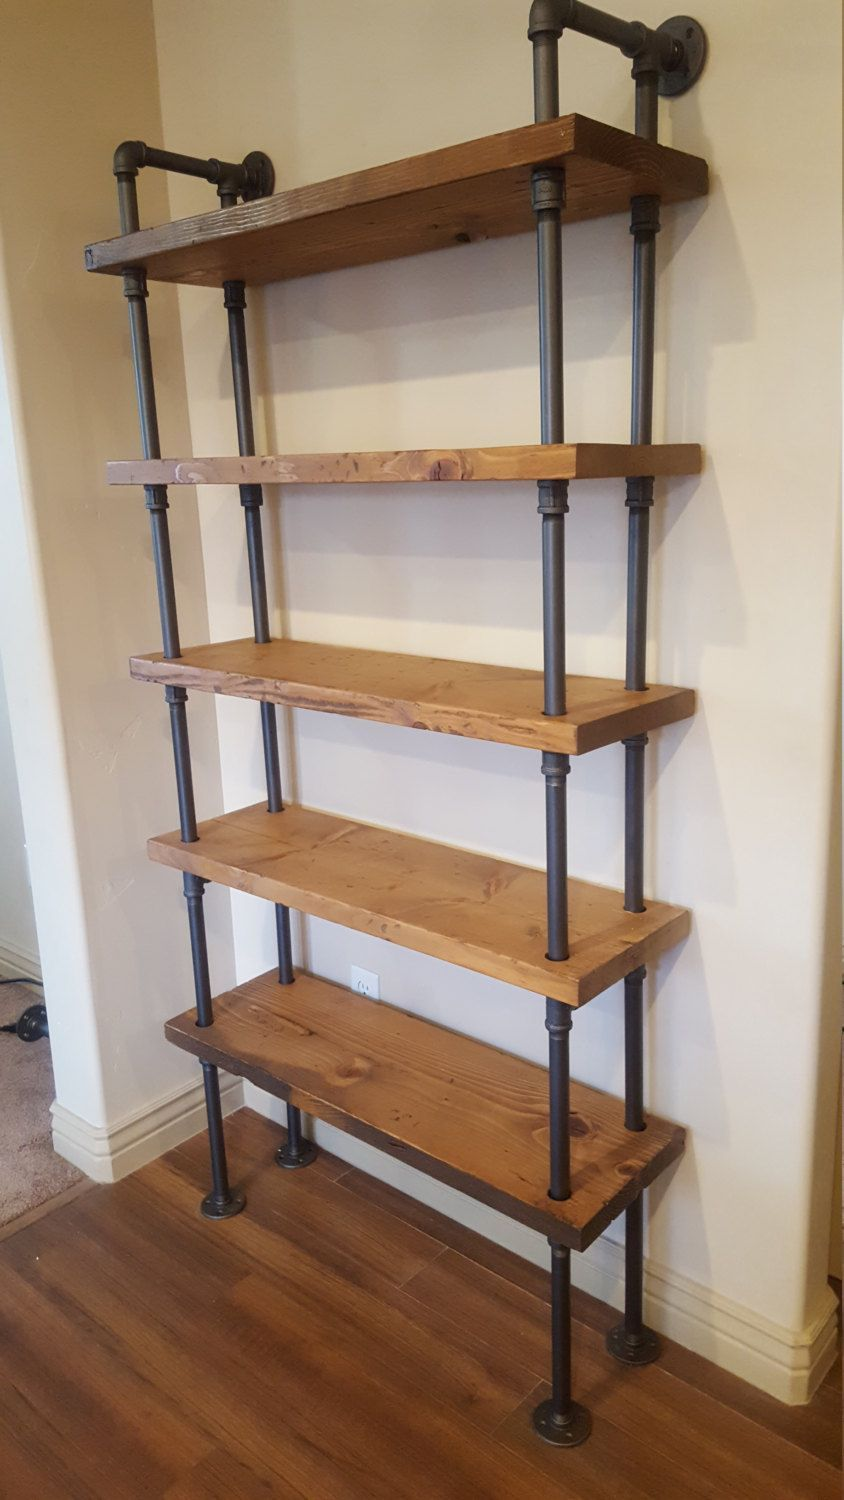 Georgeous industrial style shelving unit that will look great in any room made from real 3 4 pipe and solid distressed stained wood shelving